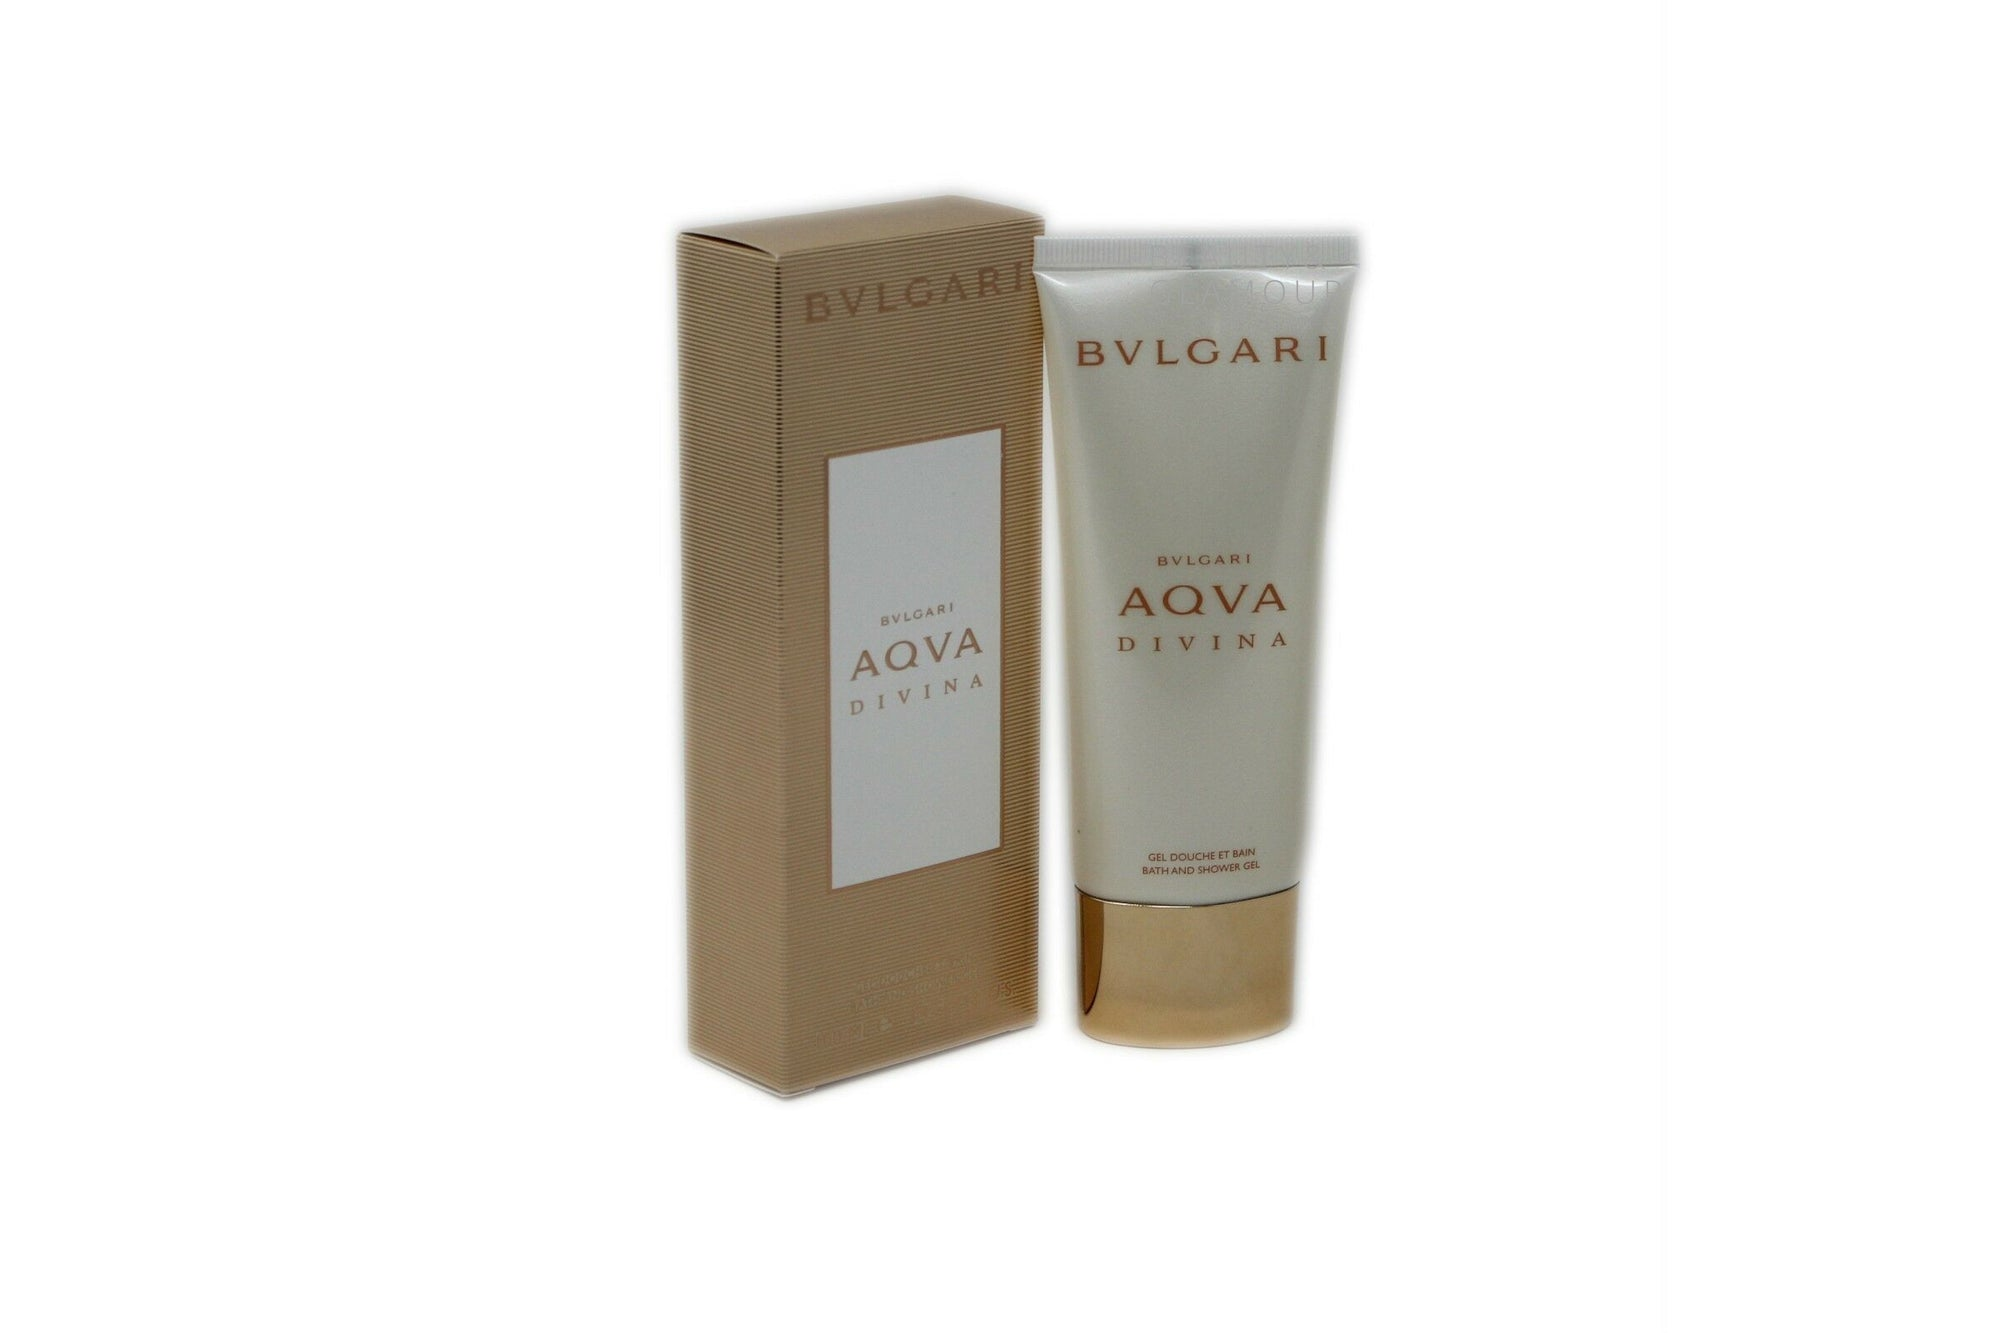 BVLGARI AQVA DIVINA BATH AND SHOWER GEL